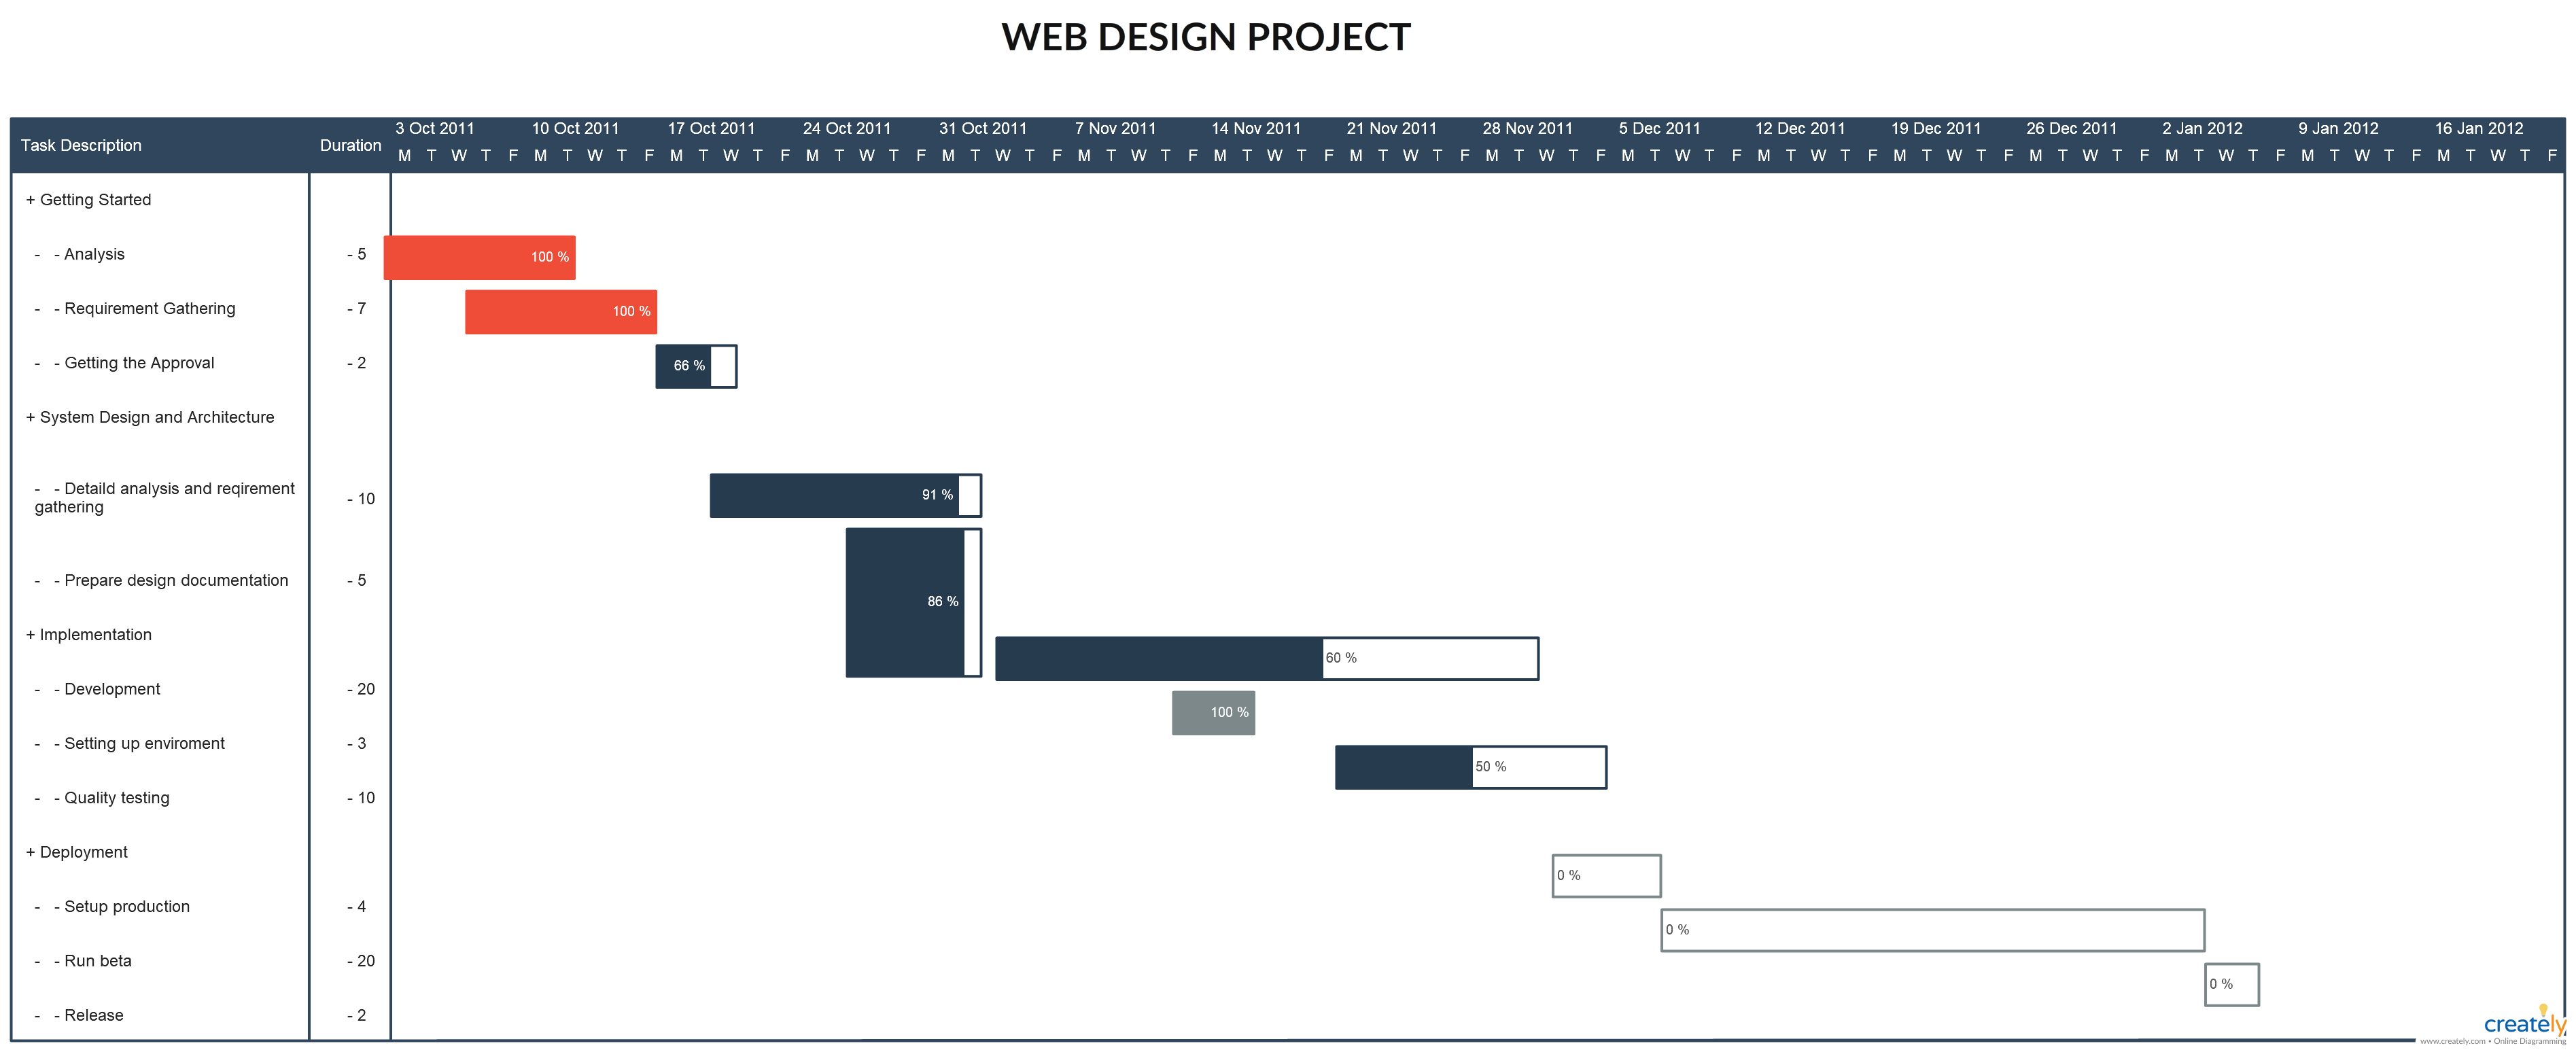 Gantt Chart Web Design Project This Is Template Of Website Development Gantt Chart You Can Edit This Template An Web Design Projects Web Design Gantt Chart